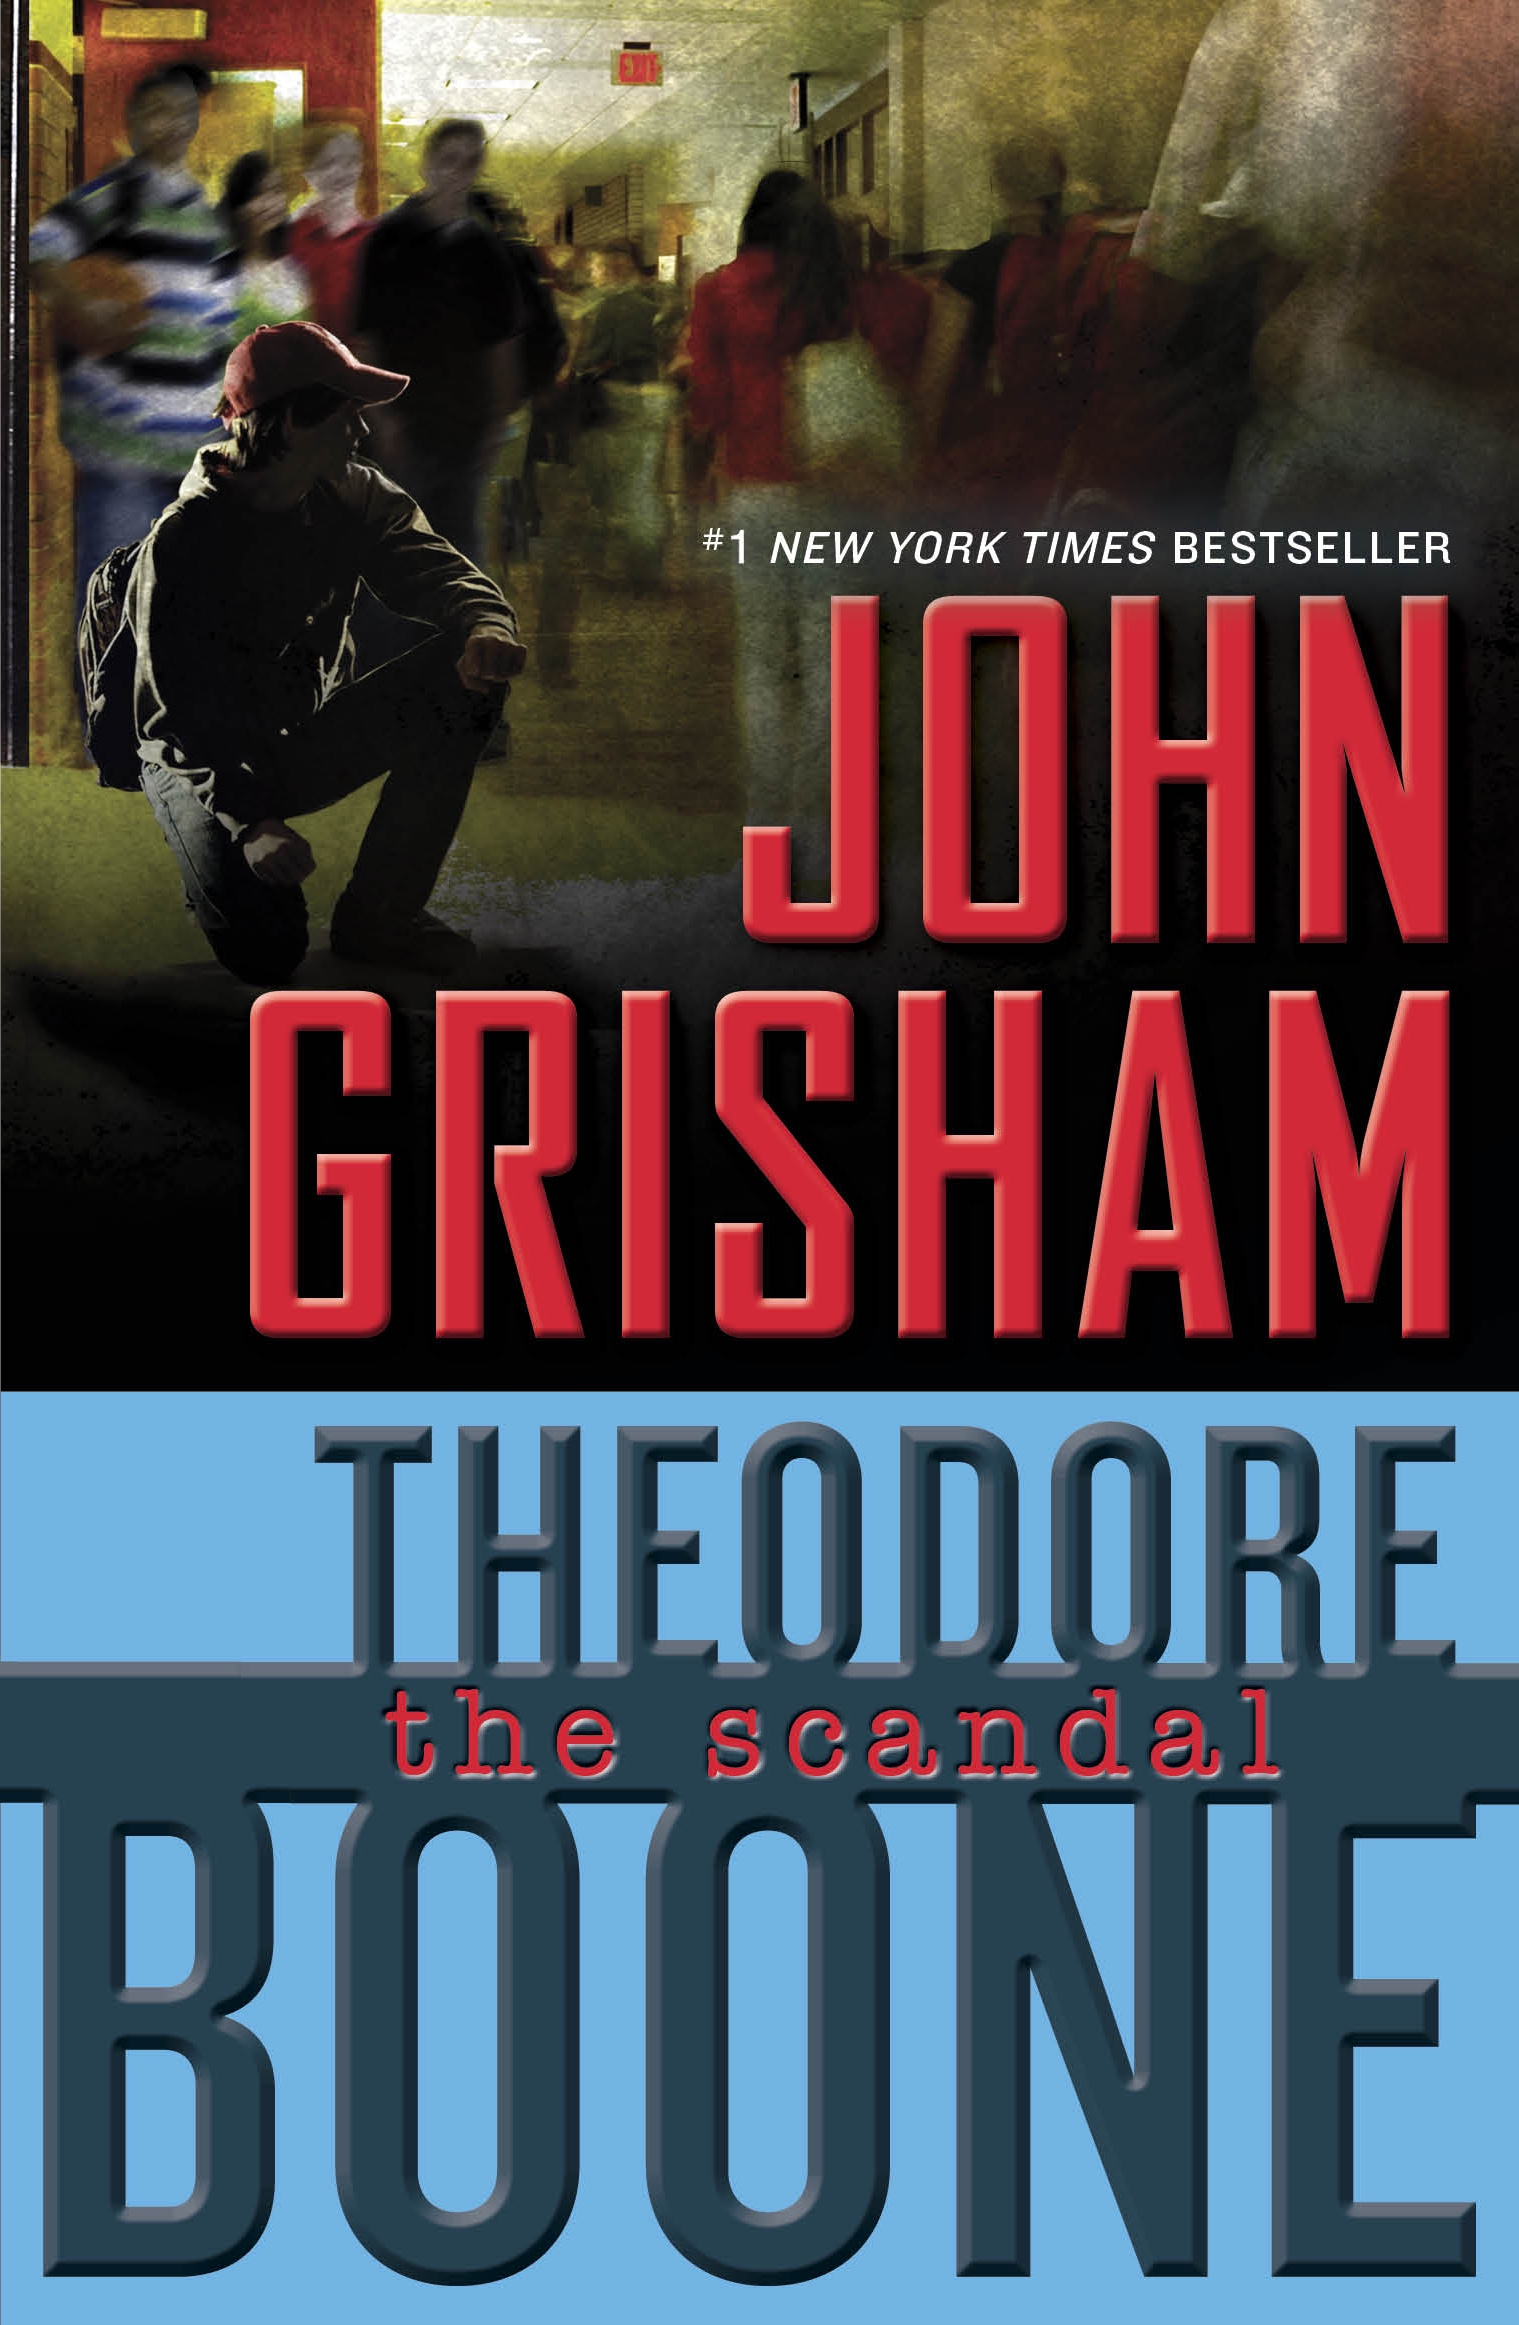 theodore boone the scandal pb.jpg